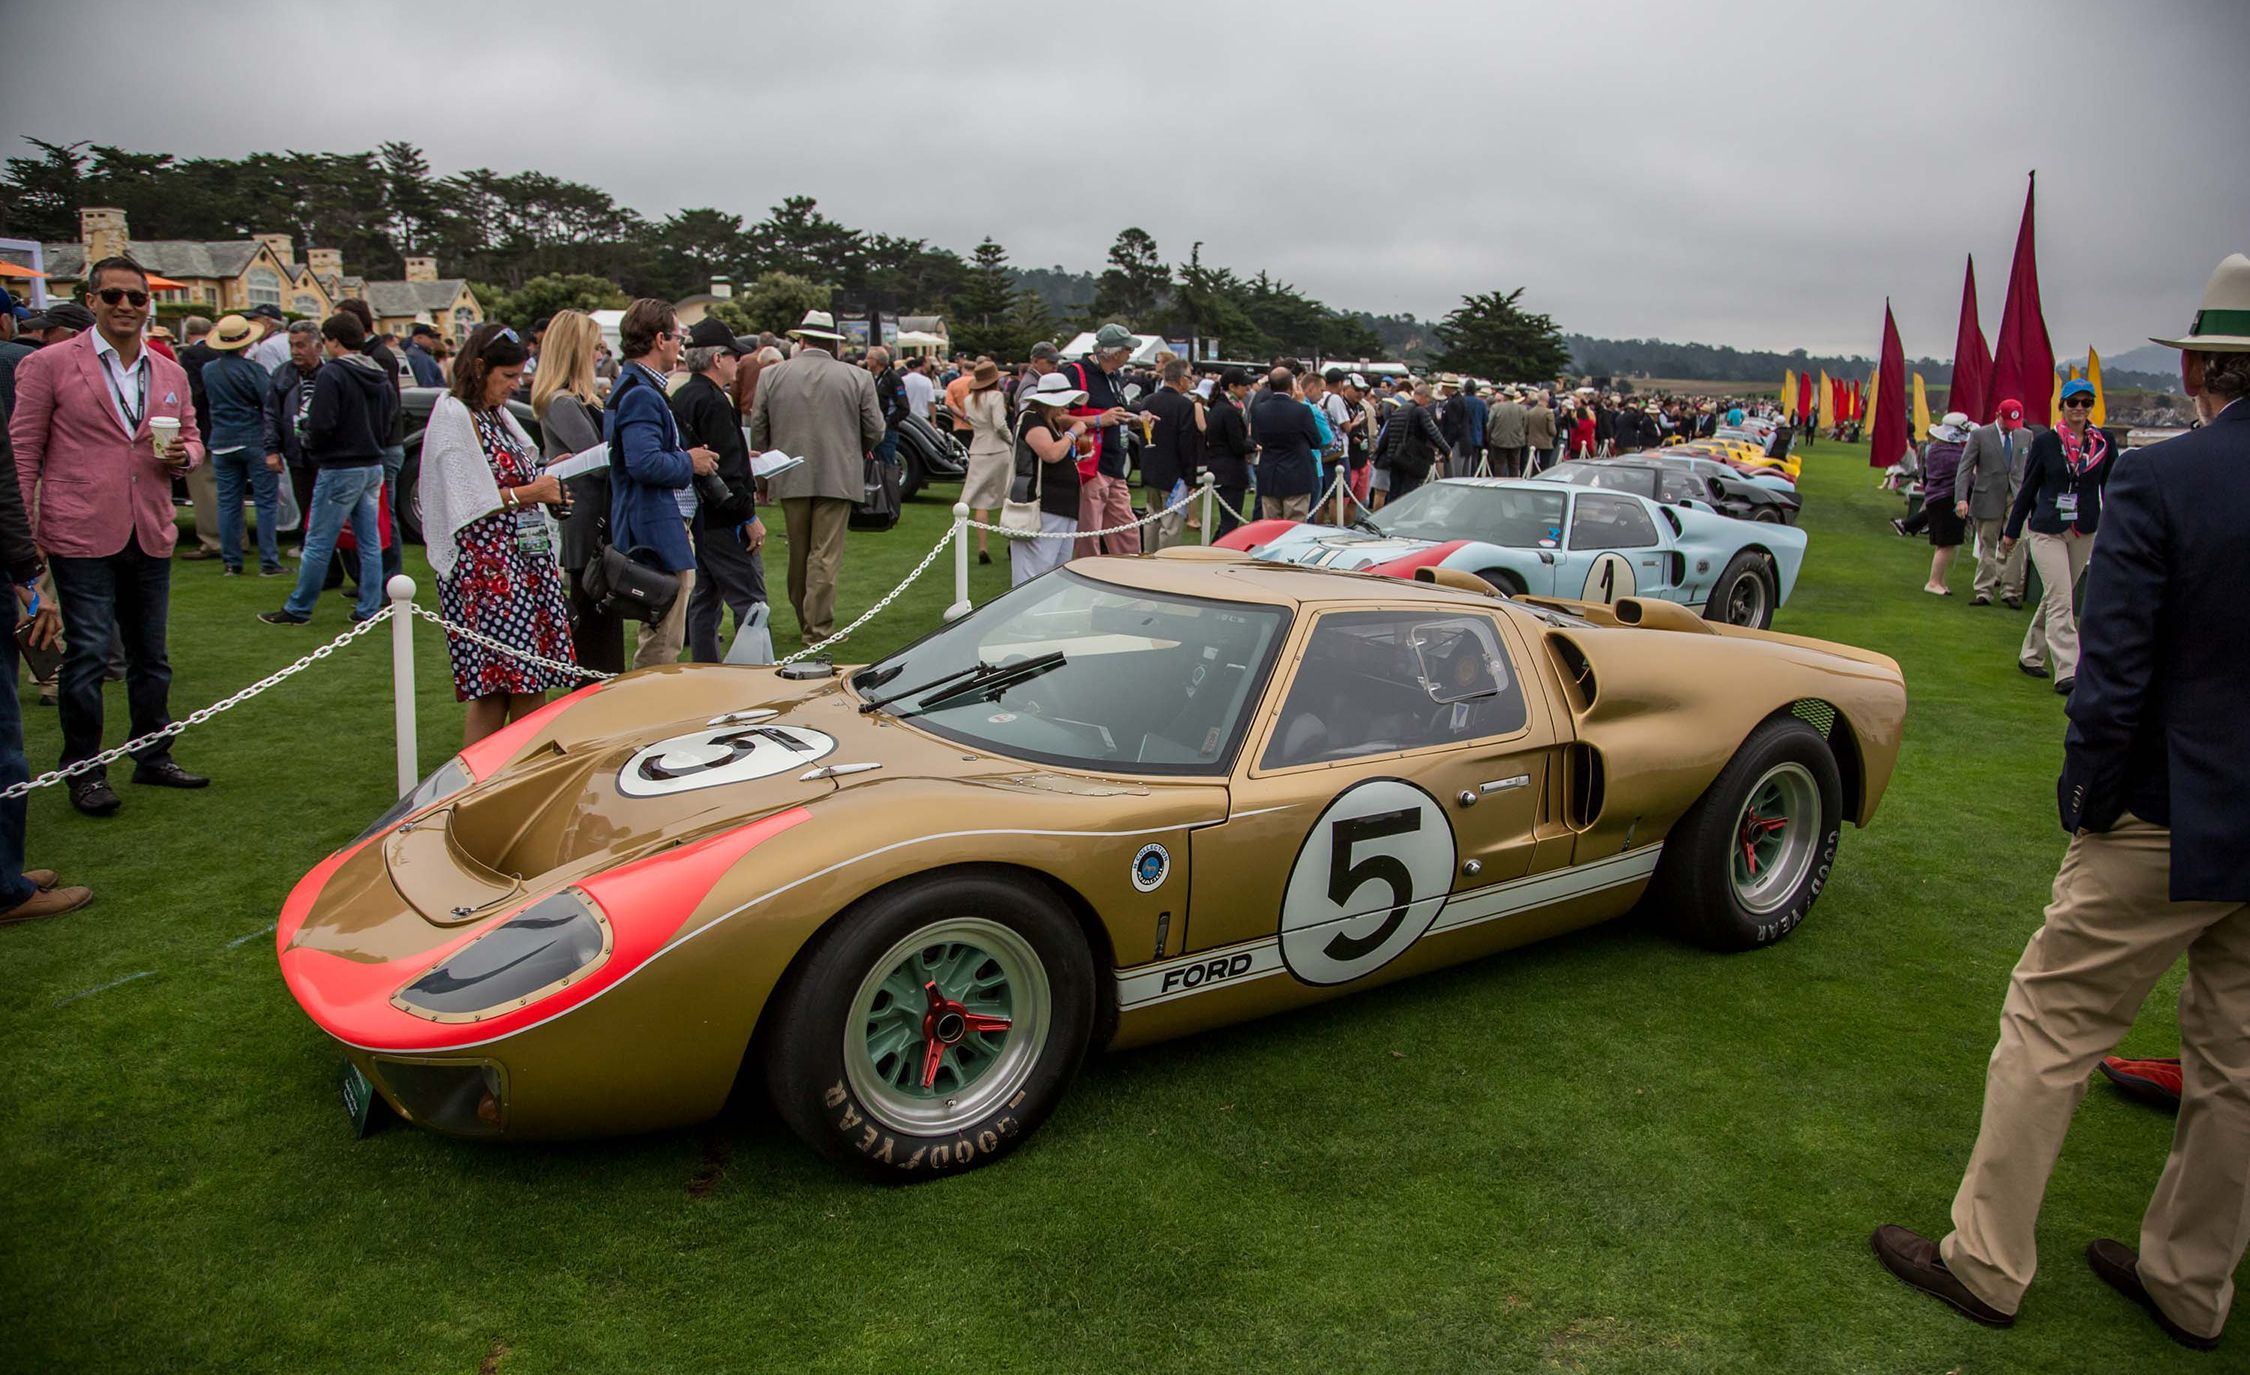 17 Vintage Ford Gt40s Stampede Into Pebble Beach